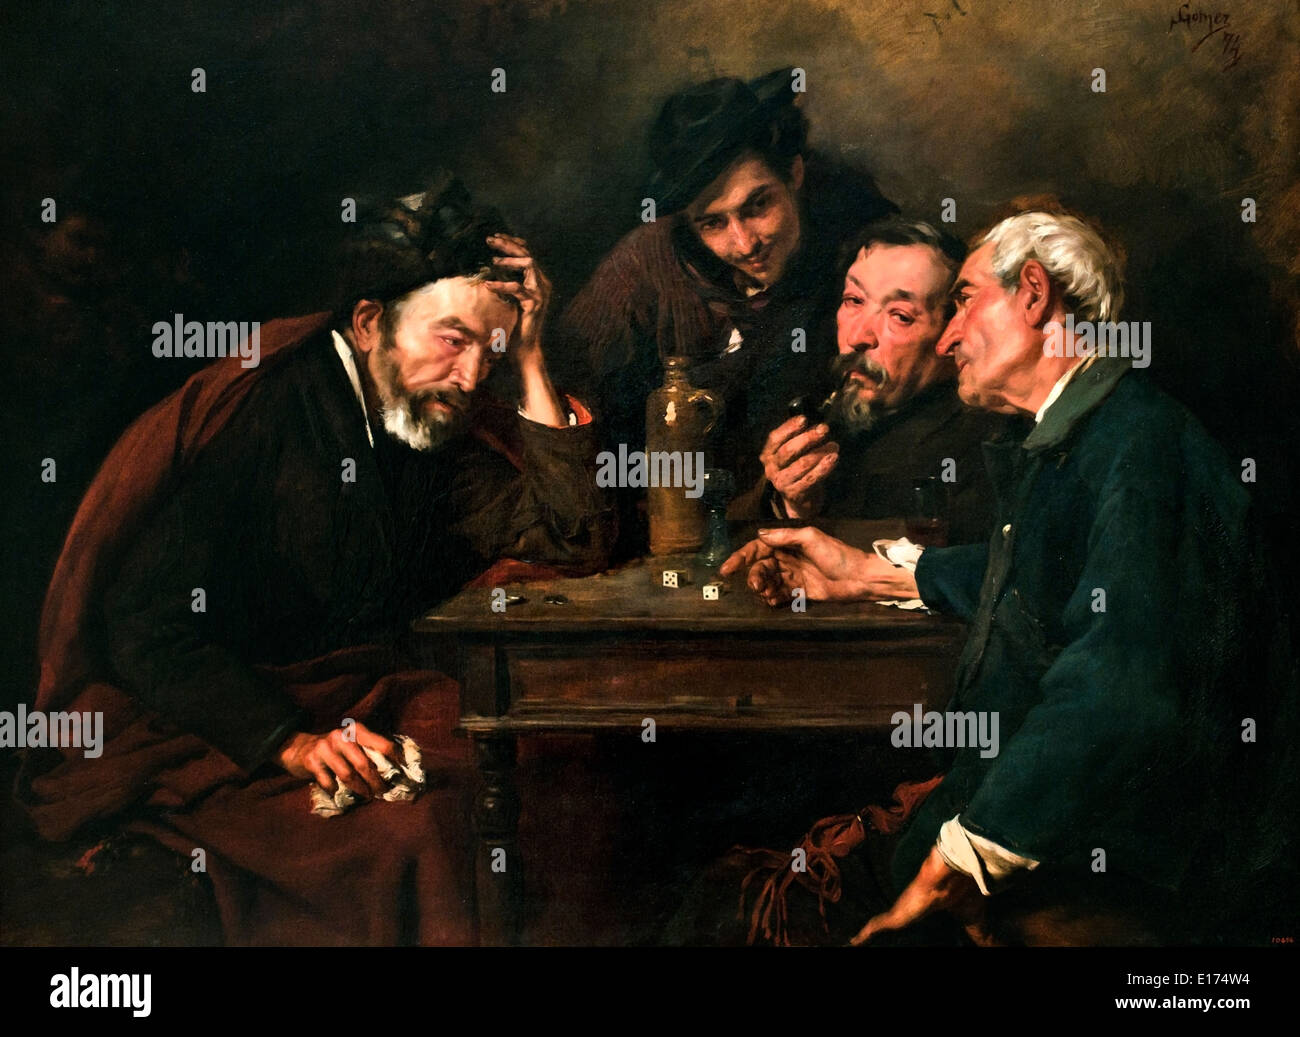 The Dice Players 1874 Simó Gómez 1845-1880 Spain Spanish - Stock Image